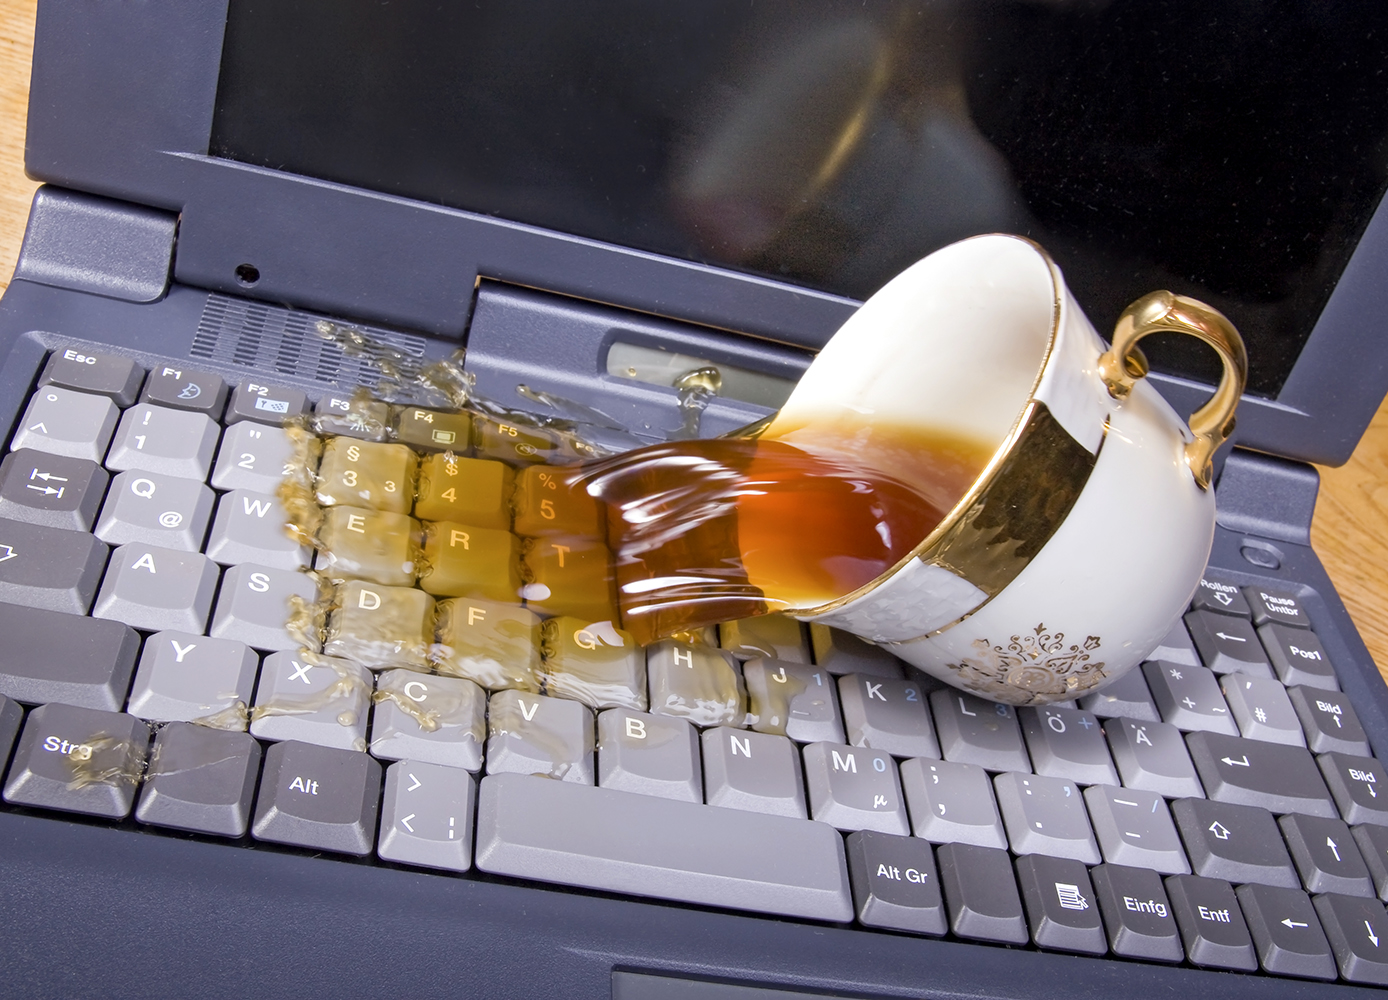 Save Your Laptop After a Spill - Good Times